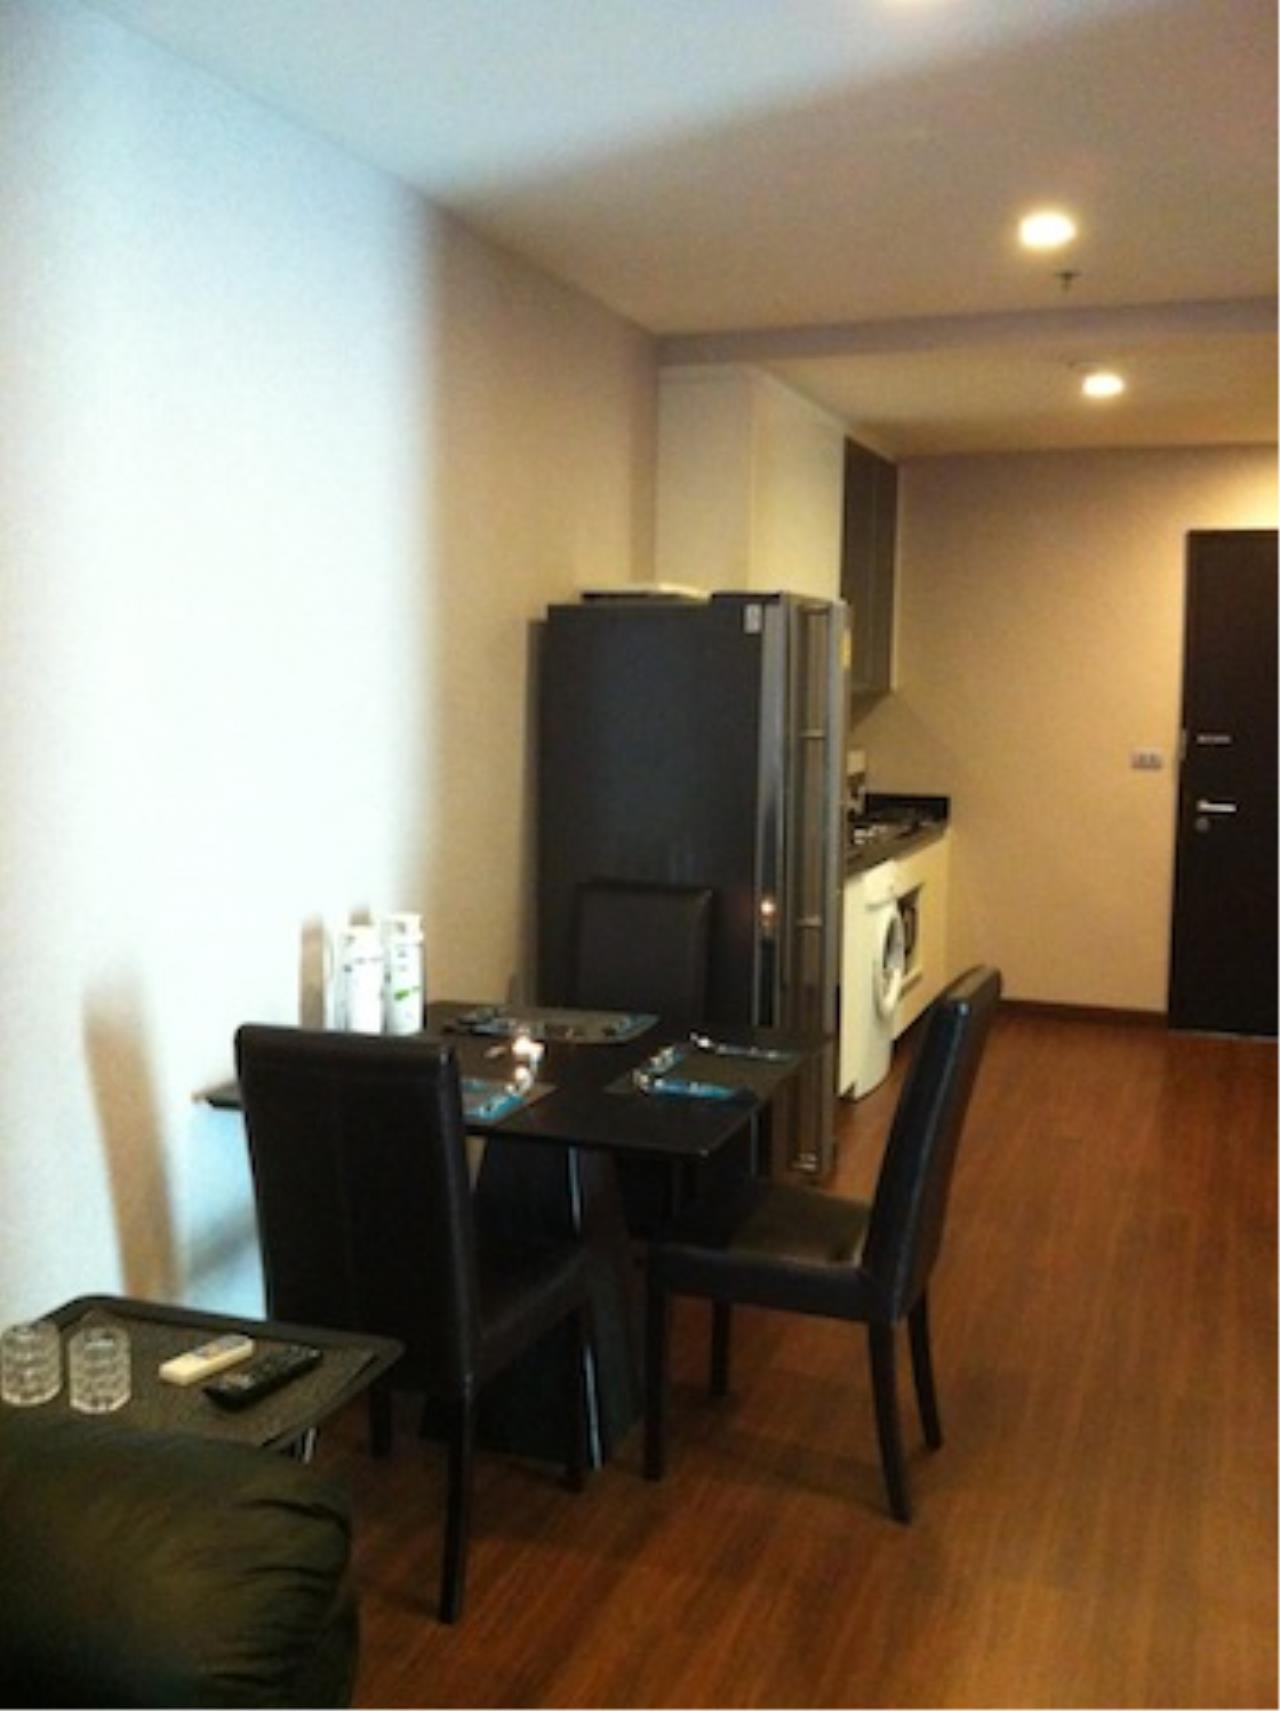 Quality Life Property Agency's Condo 1 Bedroom For Rent and For Sale  At Sky walk  35 ,  5